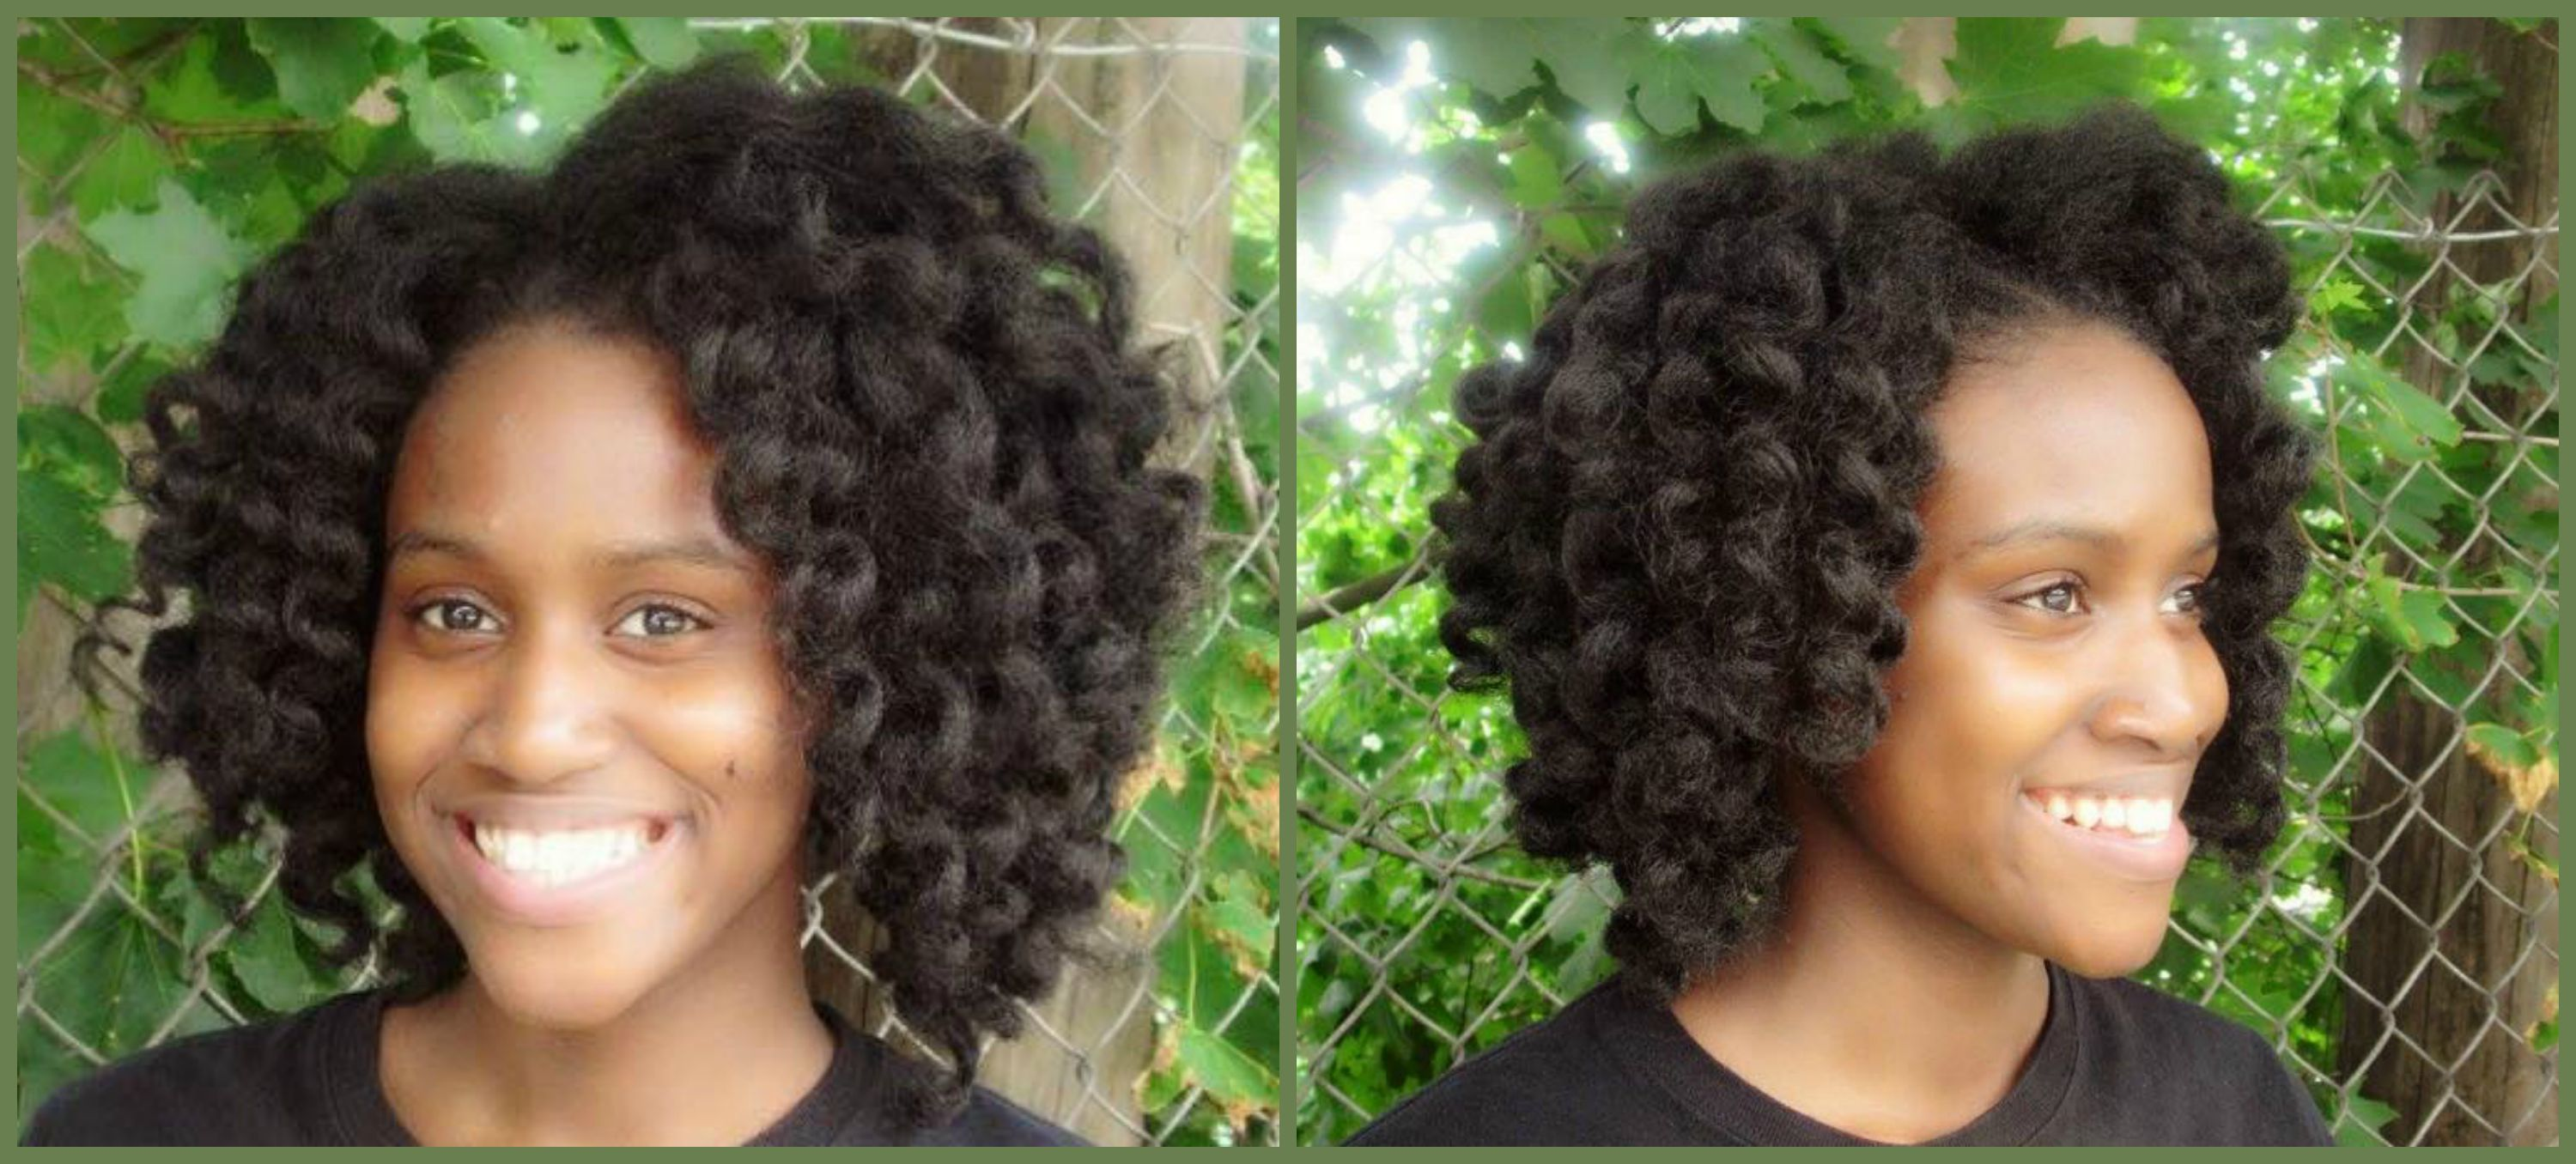 Crochet Braids Nyc : Where Can I Get Crochet Braids In Nyc freesaptutorial.com